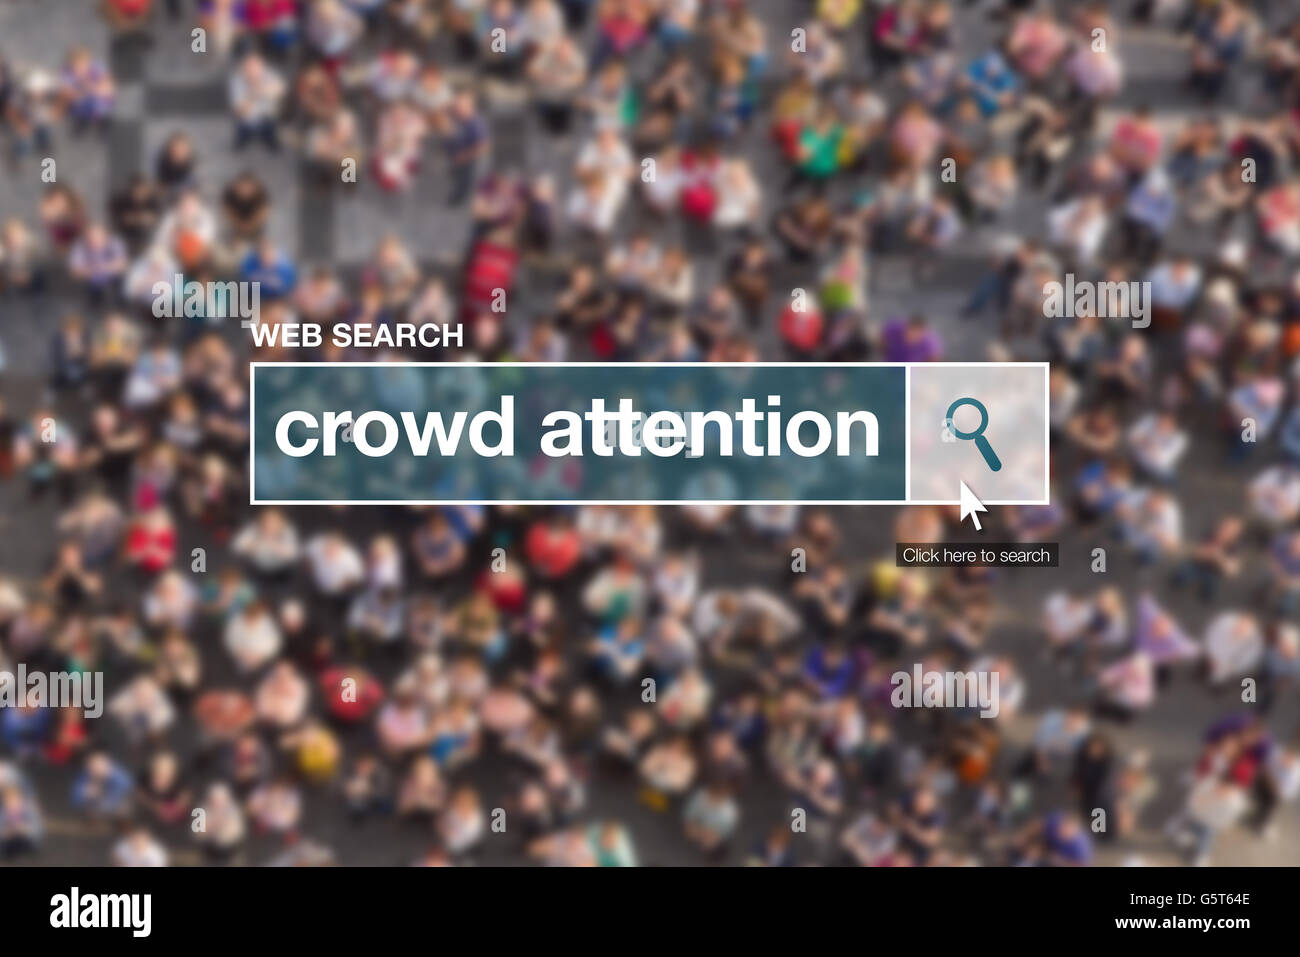 Crowd attention web search box, looking for definition in internet glossary. - Stock Image